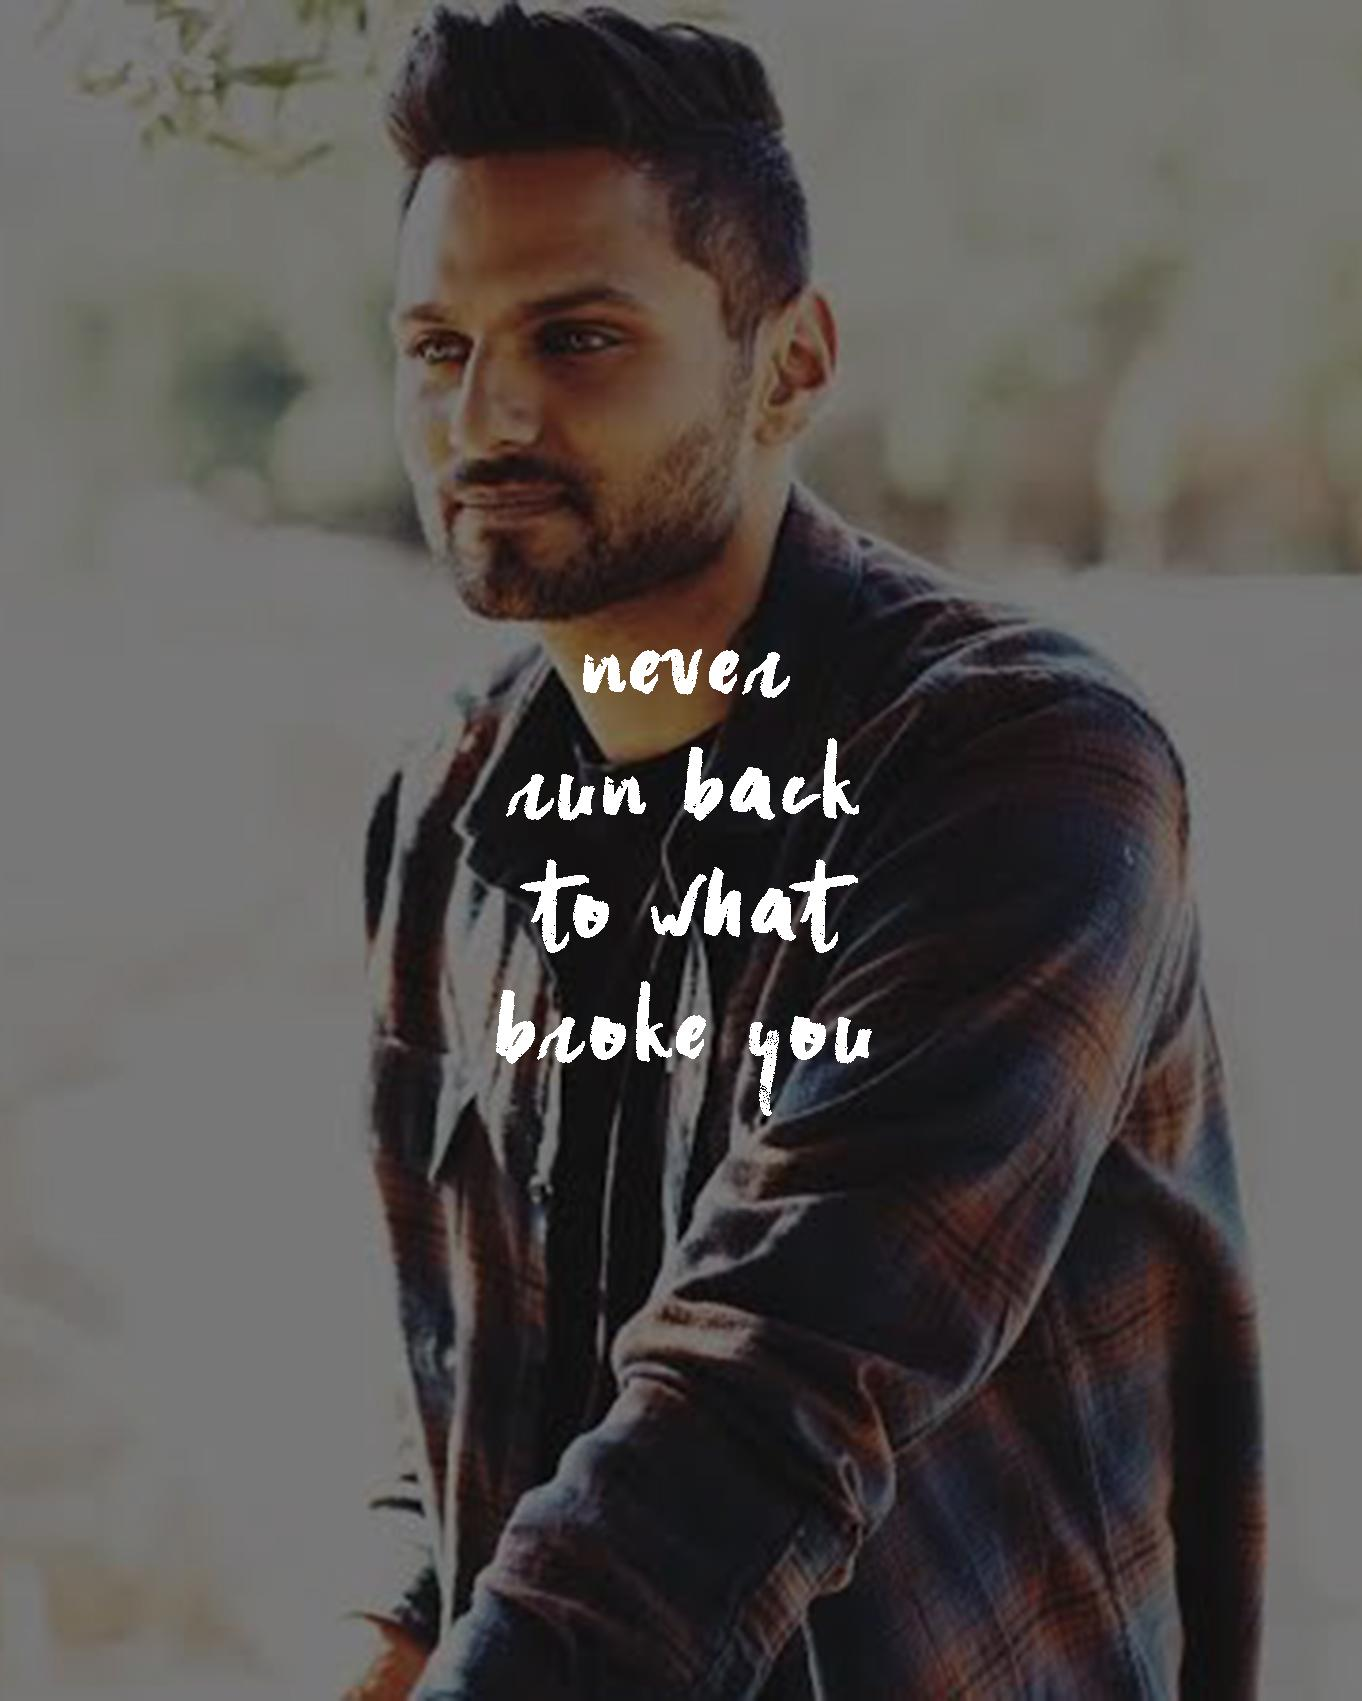 [image] Never run back to what broke you l